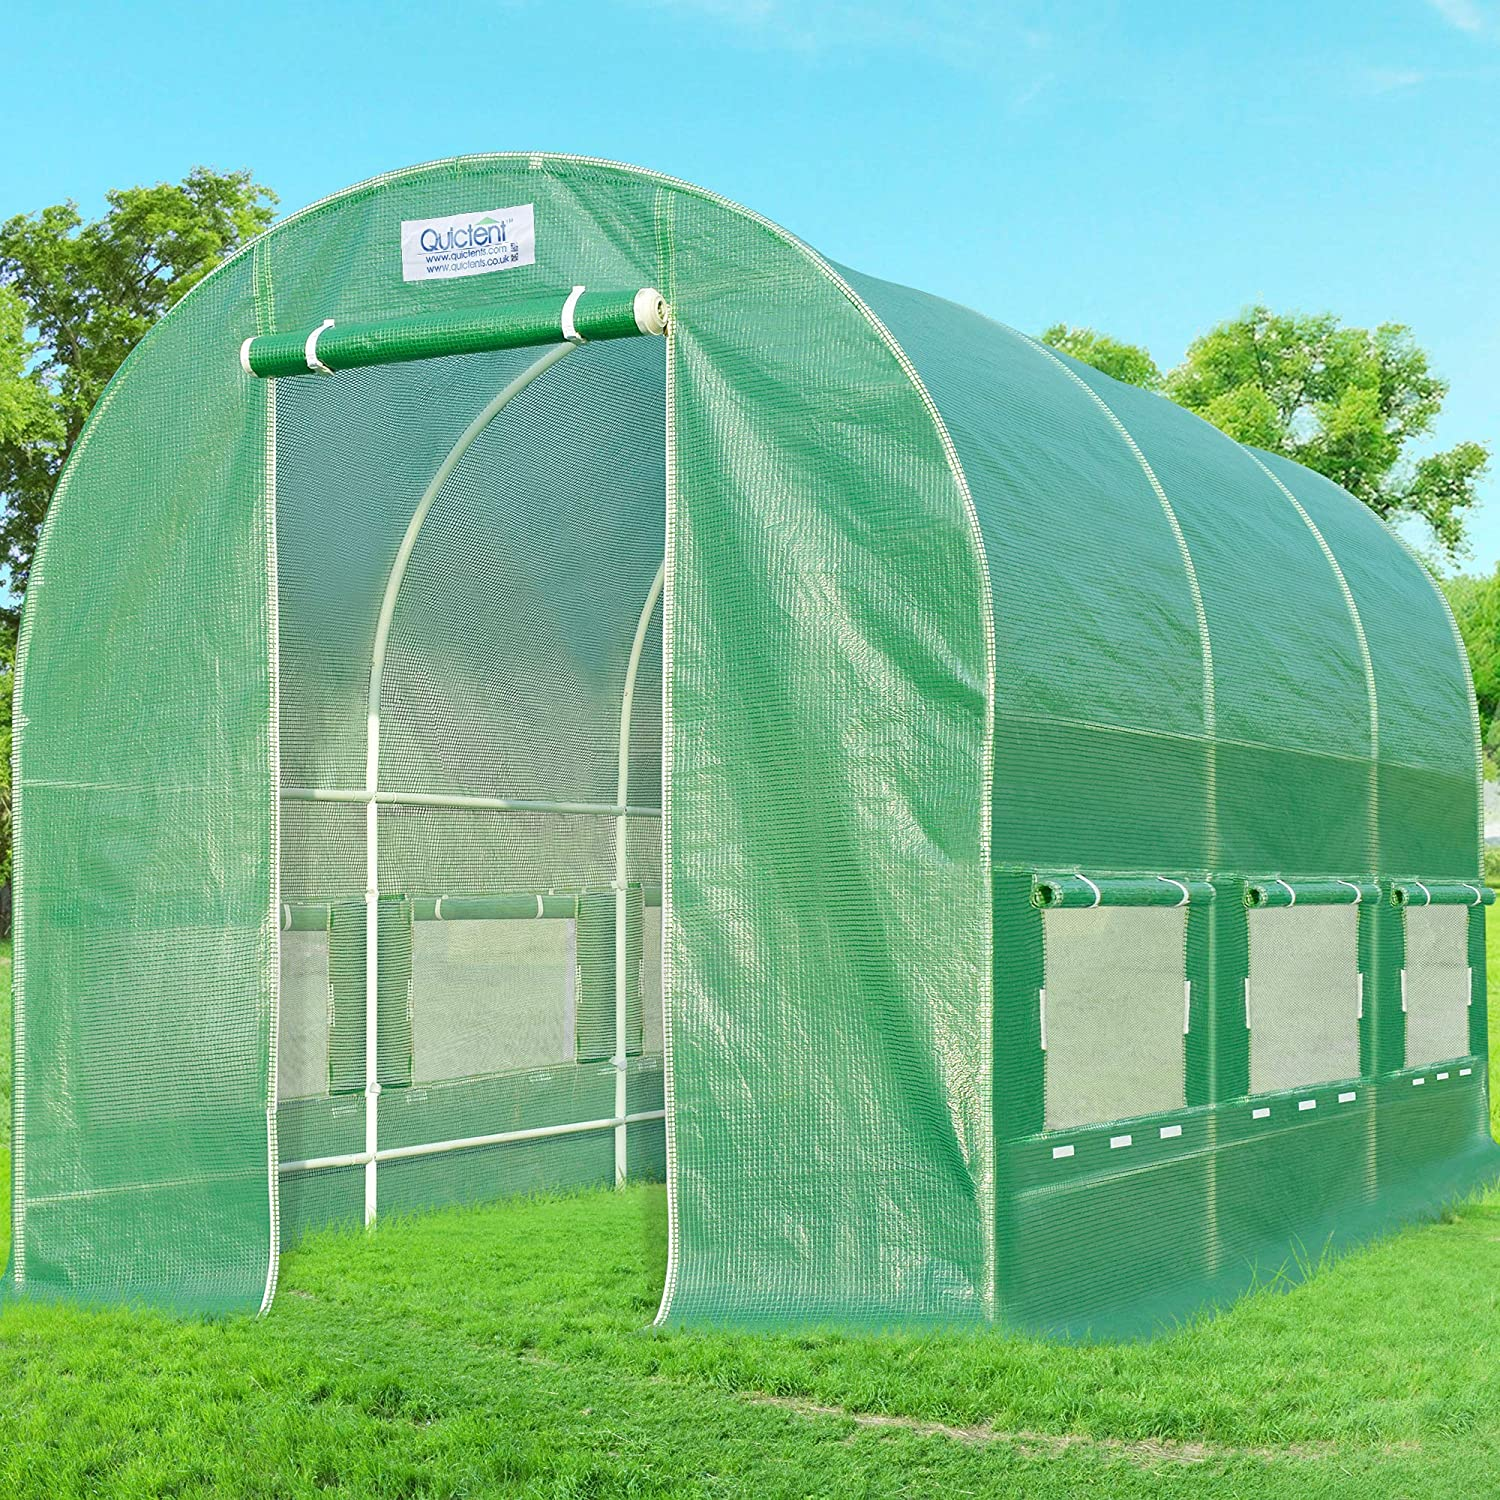 Quictent 12' X 7' X 7' Portable Greenhouse Review